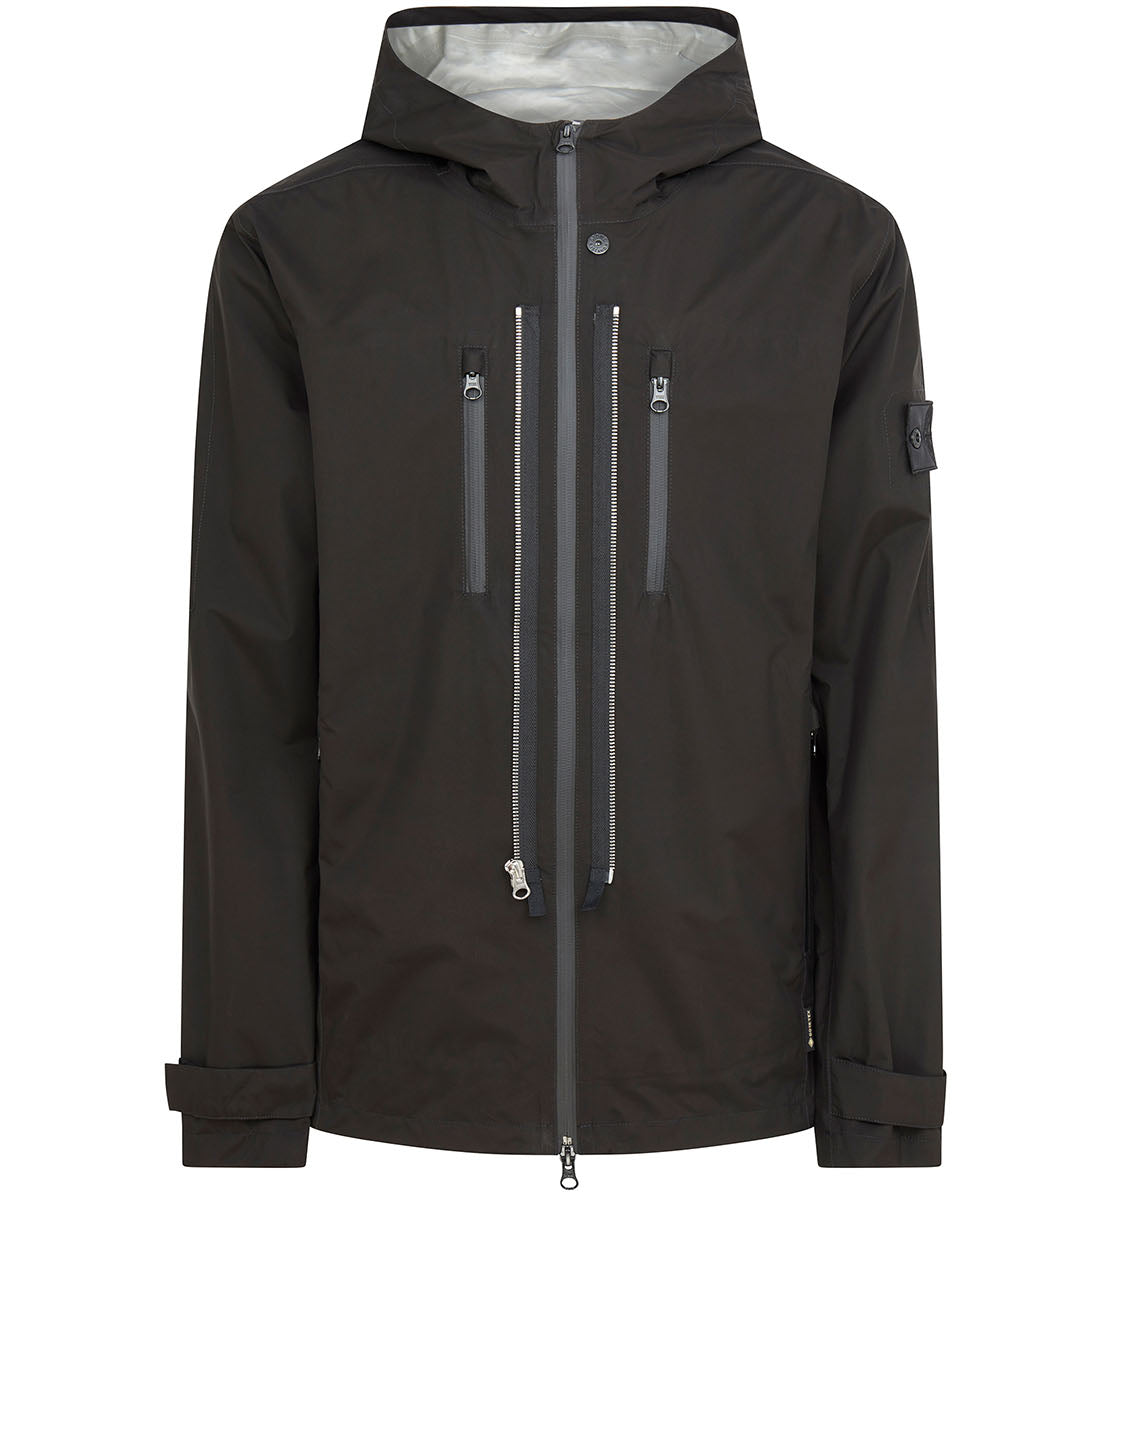 40501 TWIN ZIP SHELL Jacket in Black